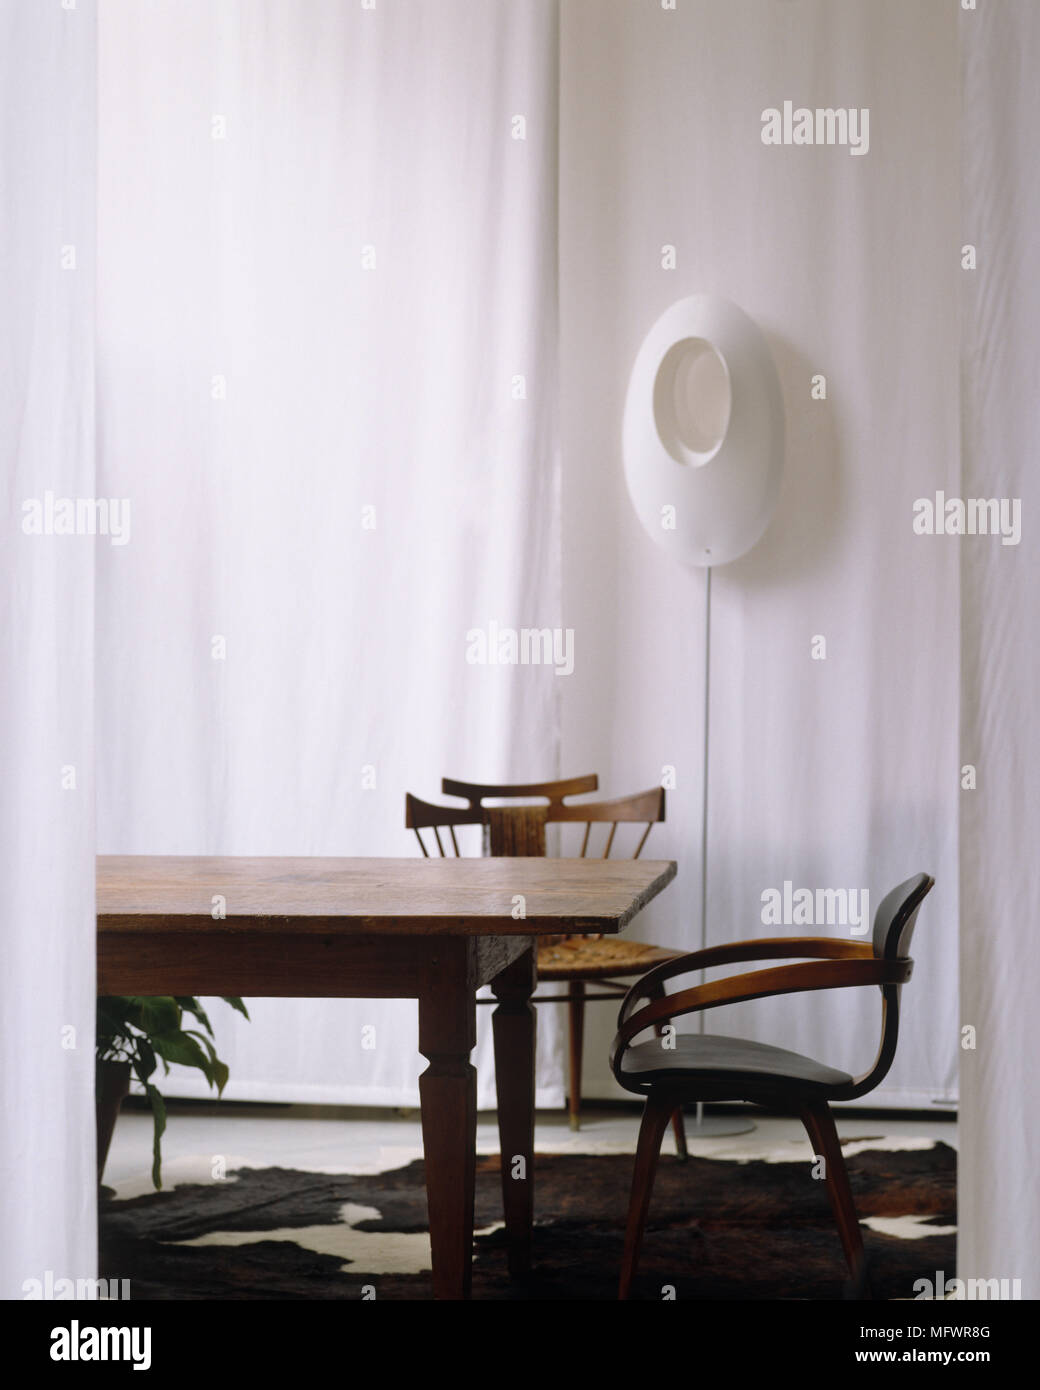 Bon Wooden Table And Chairs On Animal Skin Rug In Front Of White Curtain